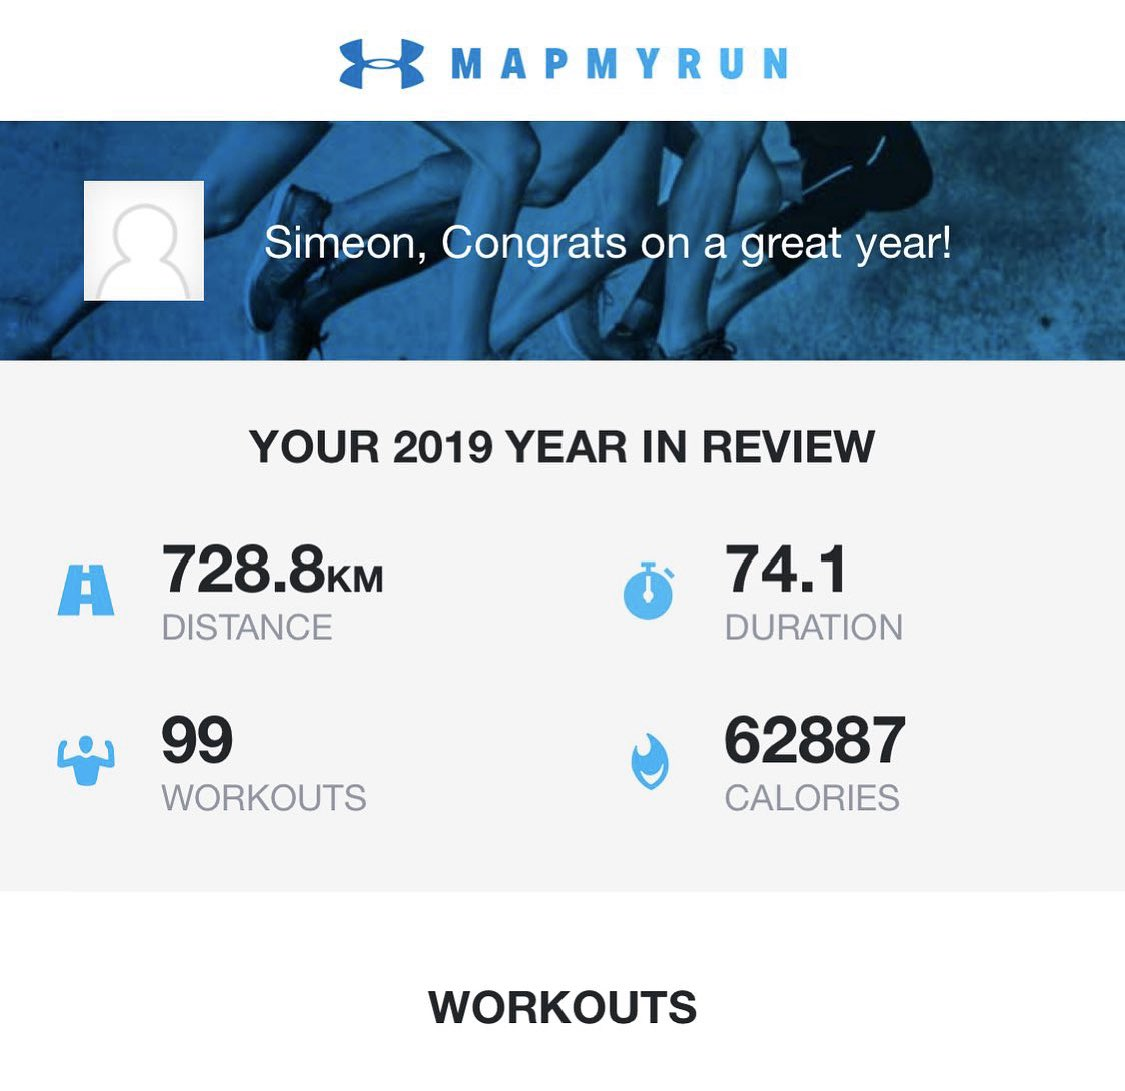 Had the same NY's resolution for c.25 years & never achieved it, but going into 2020 with it already cracked. All thanks to @underarmouruk @uamapmyrun & their fitness tech. Feel so much better for it. Apart from, you know, the Norovirus. #fitnessgoals #getfit #ad #influencerlifepic.twitter.com/QkPJg90IlX